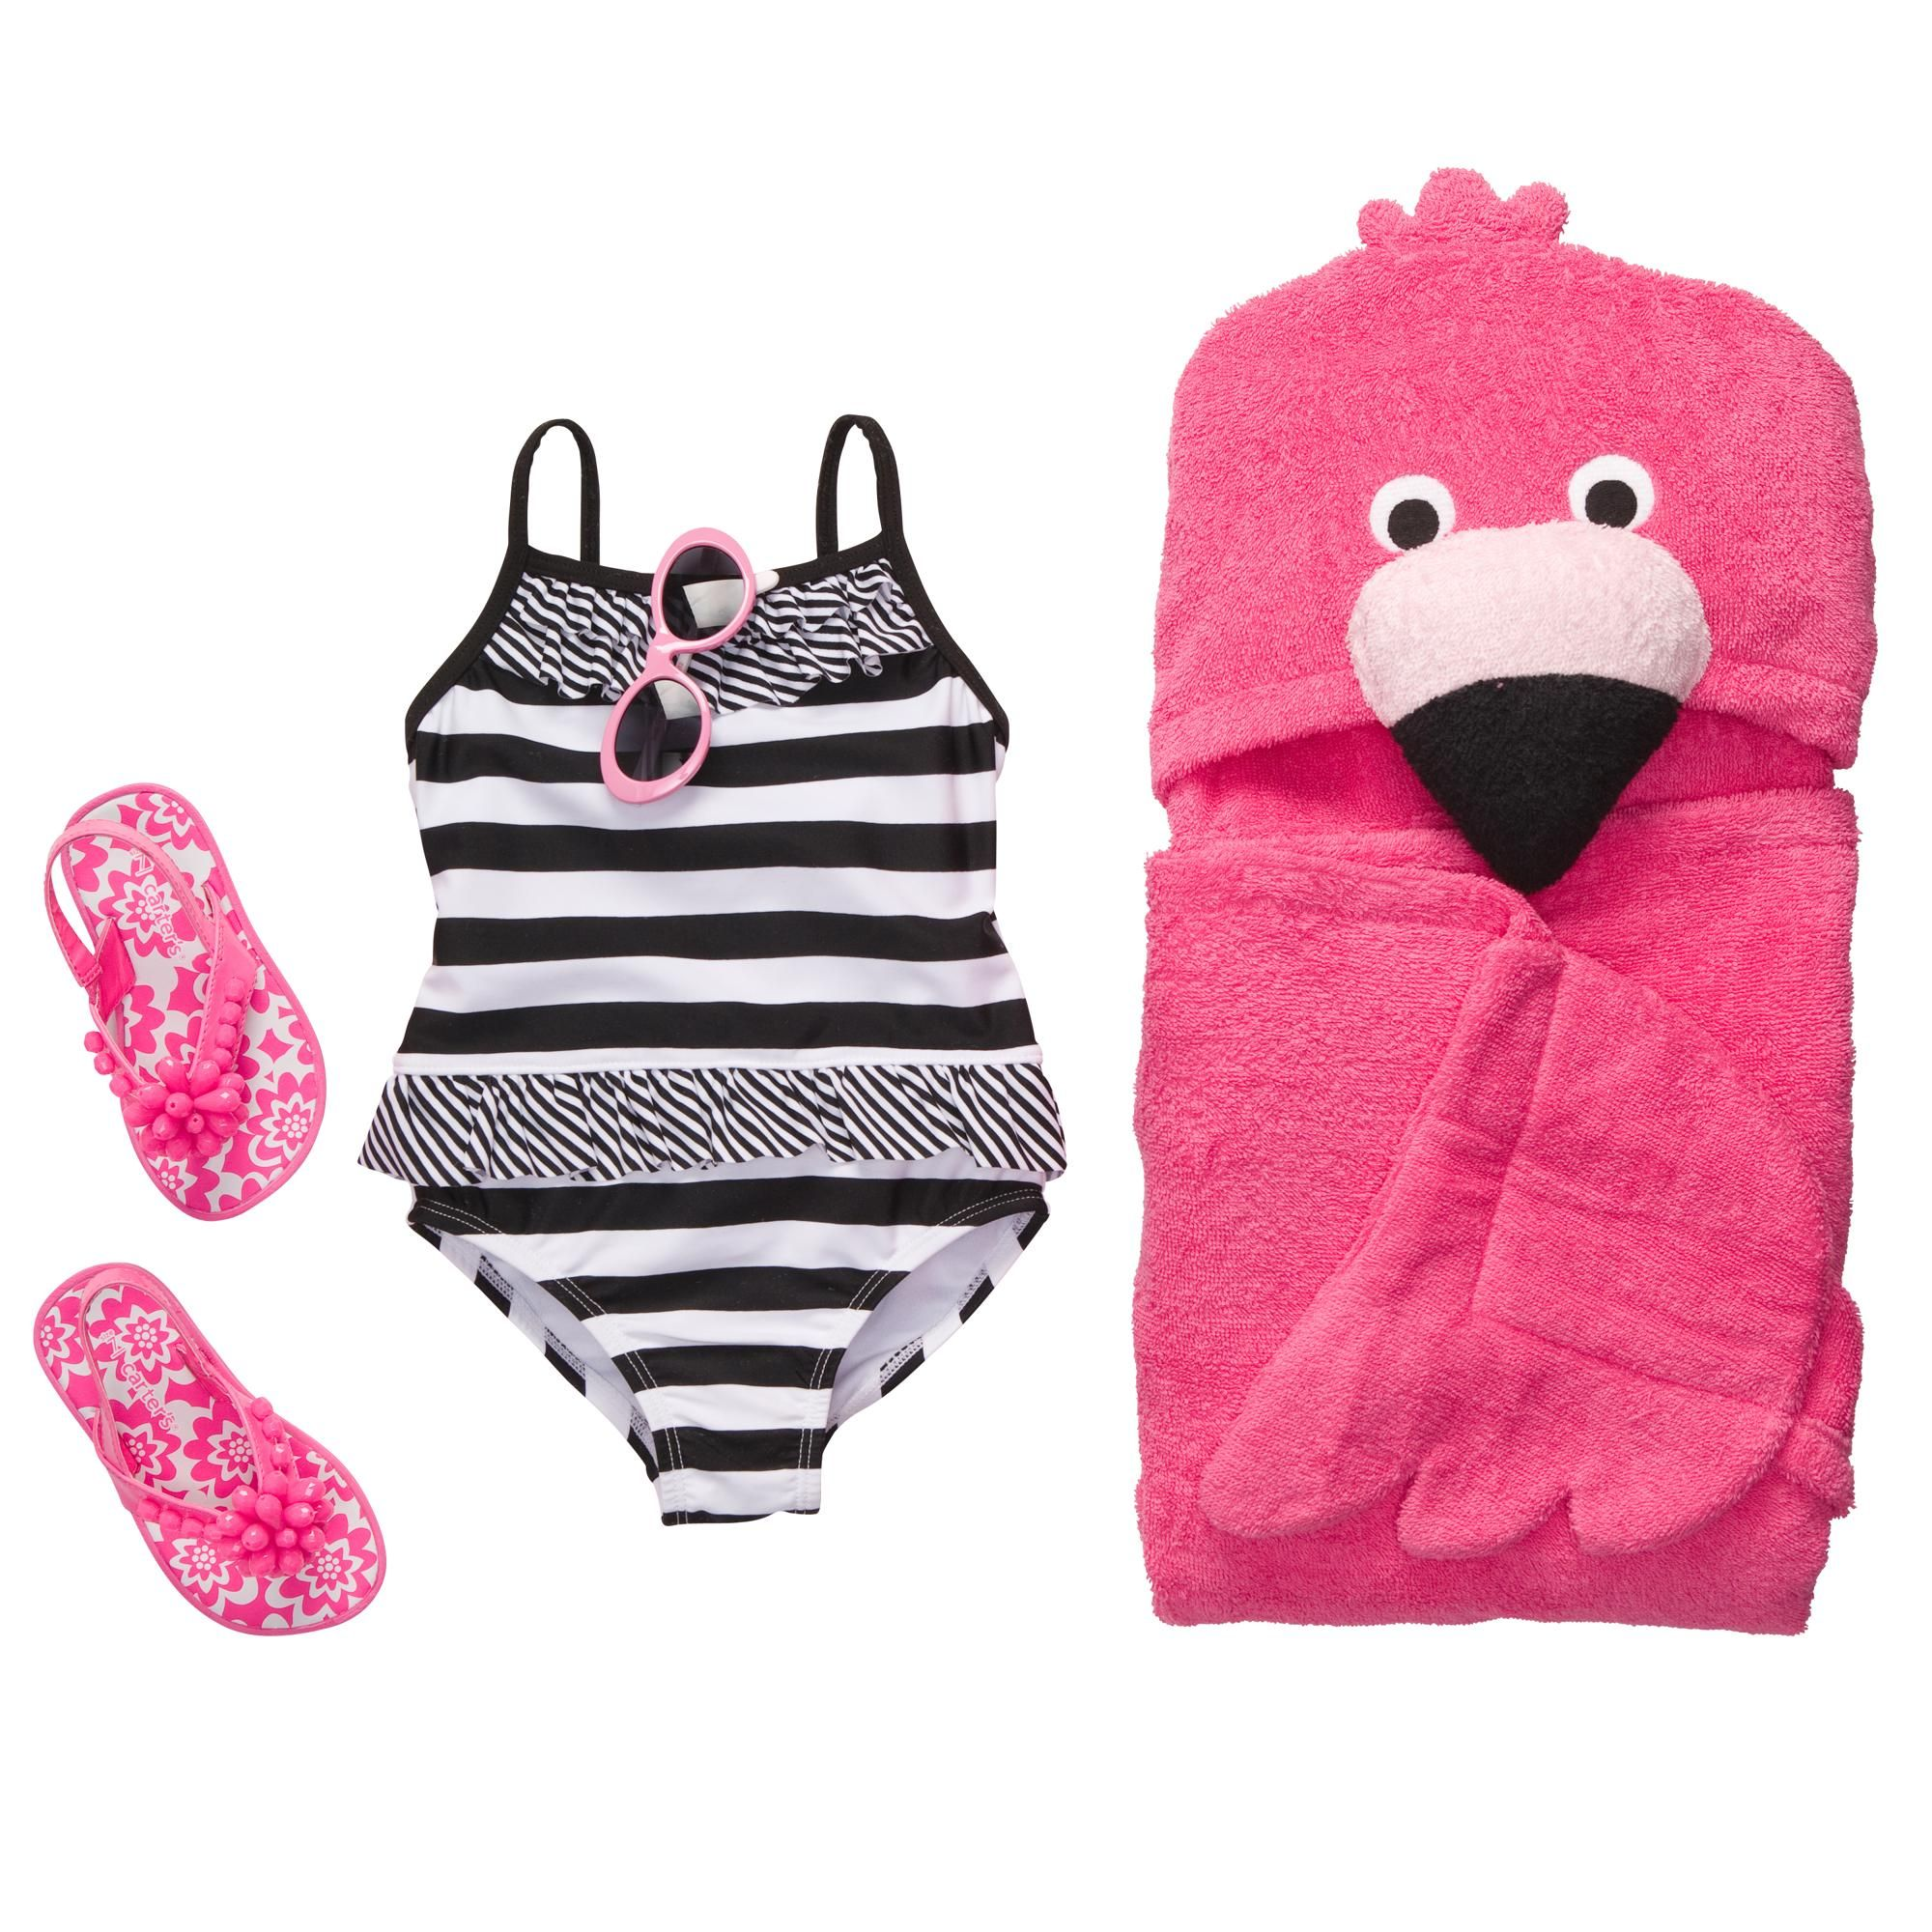 How adorable is this Flamingo Baby set from @Carter's Babies and Kids? Comes with sandals, bathing suit, sunglasses and a hooded towel!